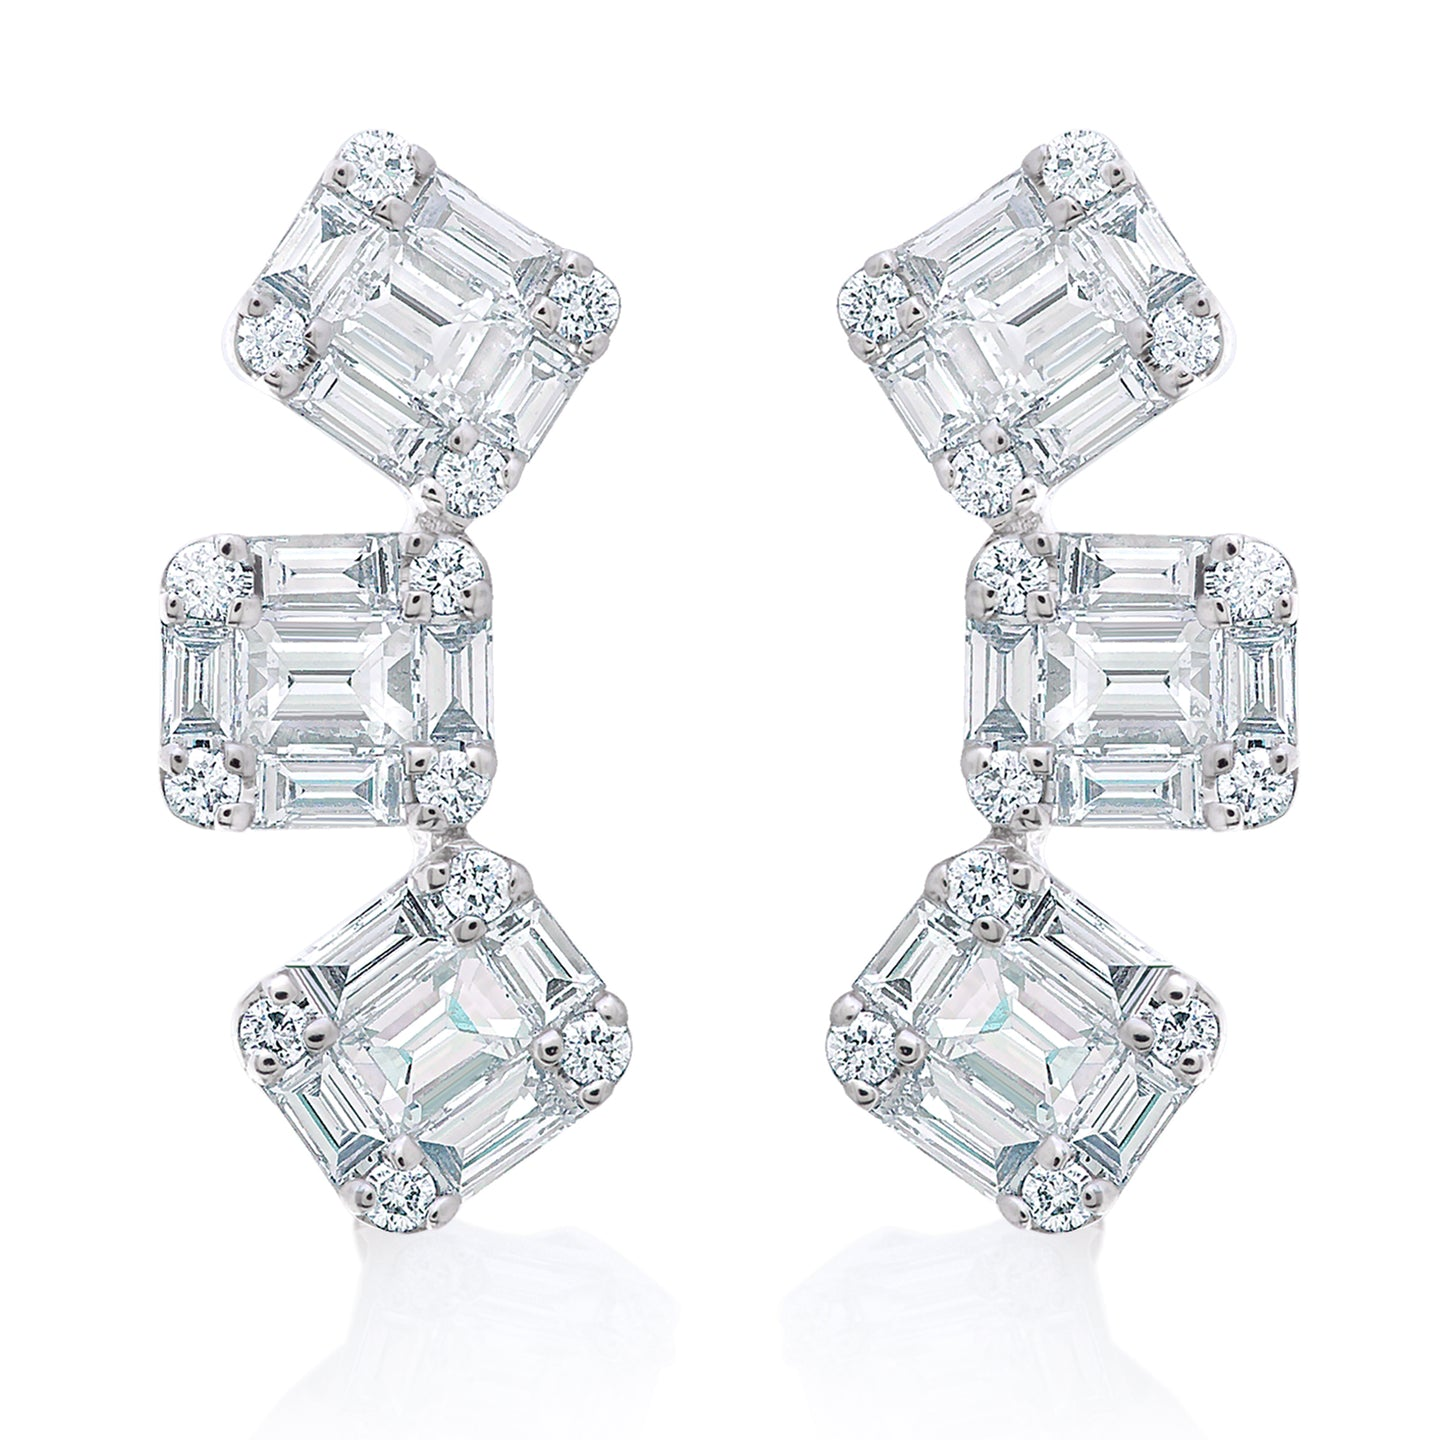 Illusion Diamond Ear Climber Earrings